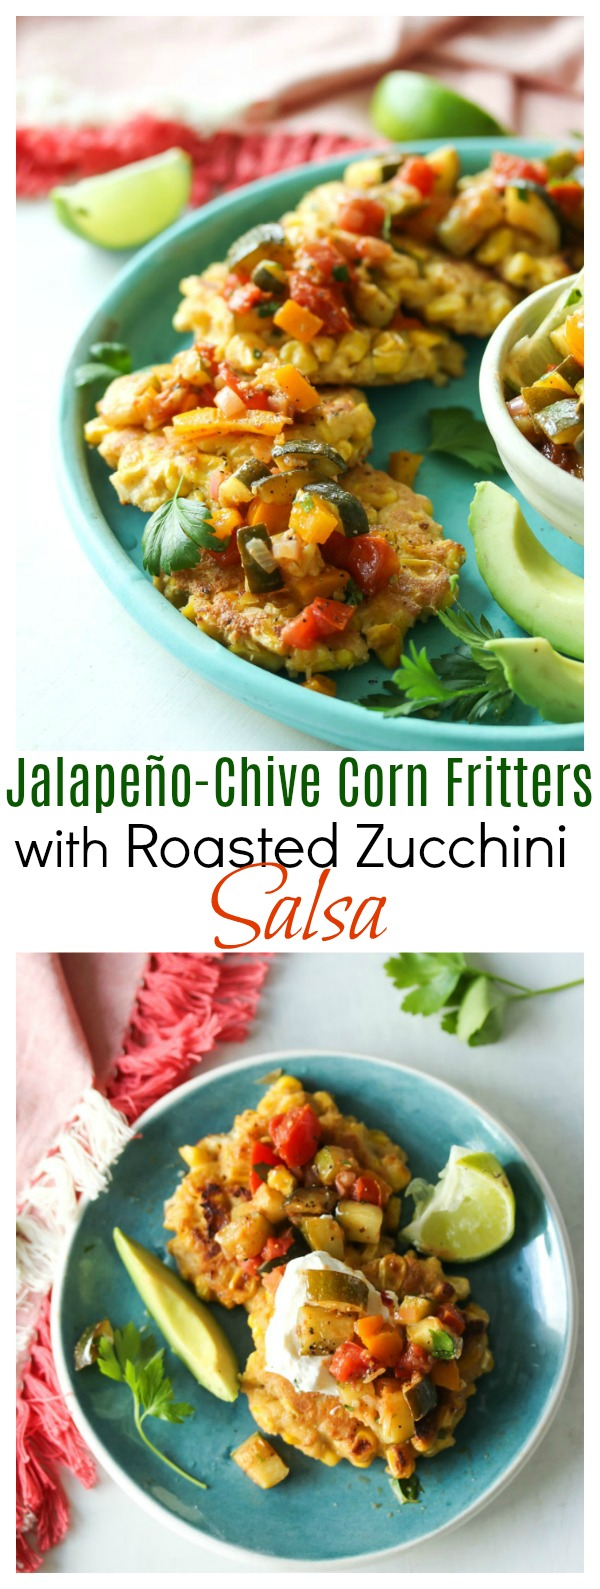 Jalapeno-Chive Corn Fritters with Roasted Zucchini Salsa | dishingouthealth.com